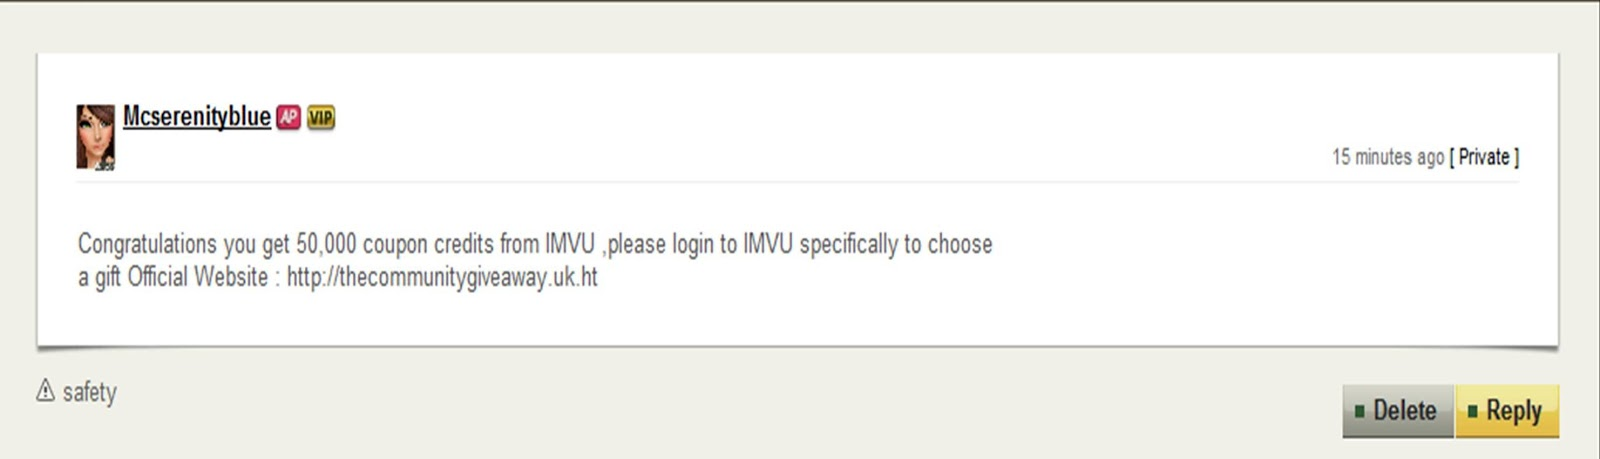 IMVU SCAM WARNING - PLEASE TAKE NOTE OF THE FOLLOWING NEW